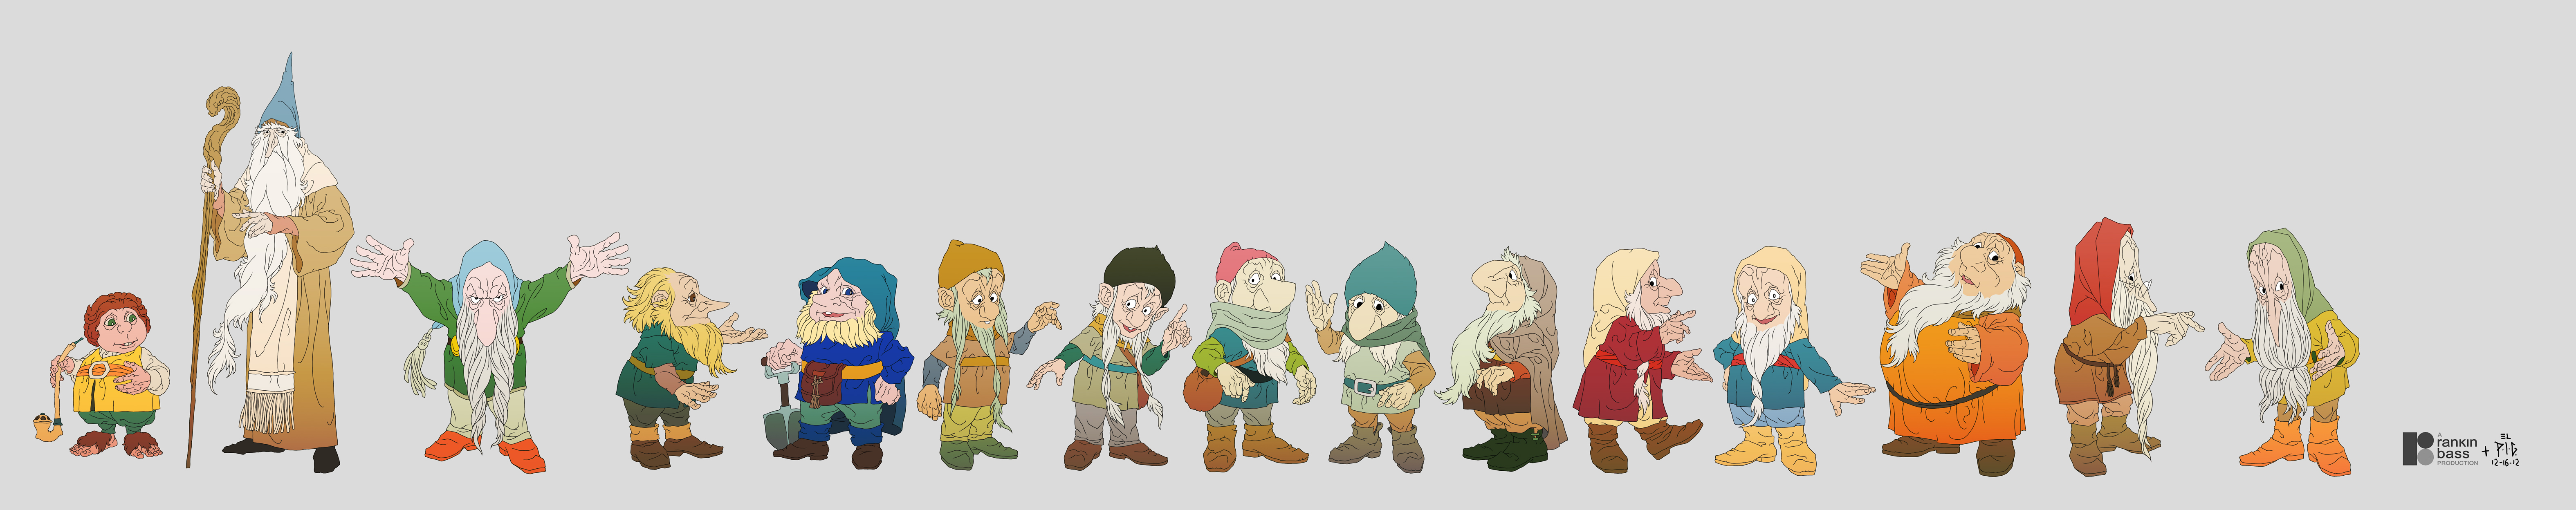 Thorins Company colored